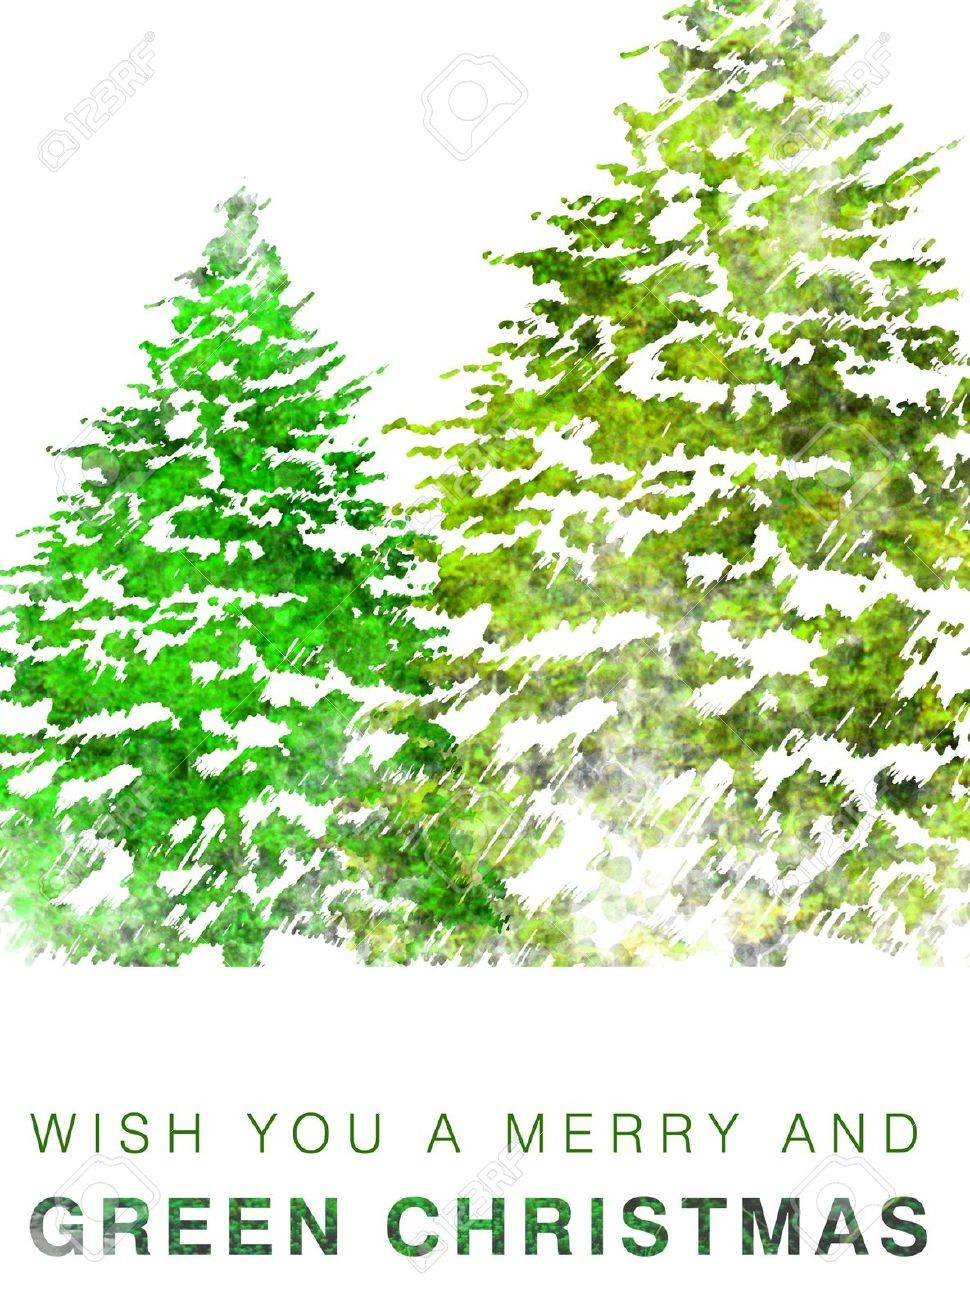 Eco Friendly Christmas eco friendly christmas card stock photo, picture and royalty free